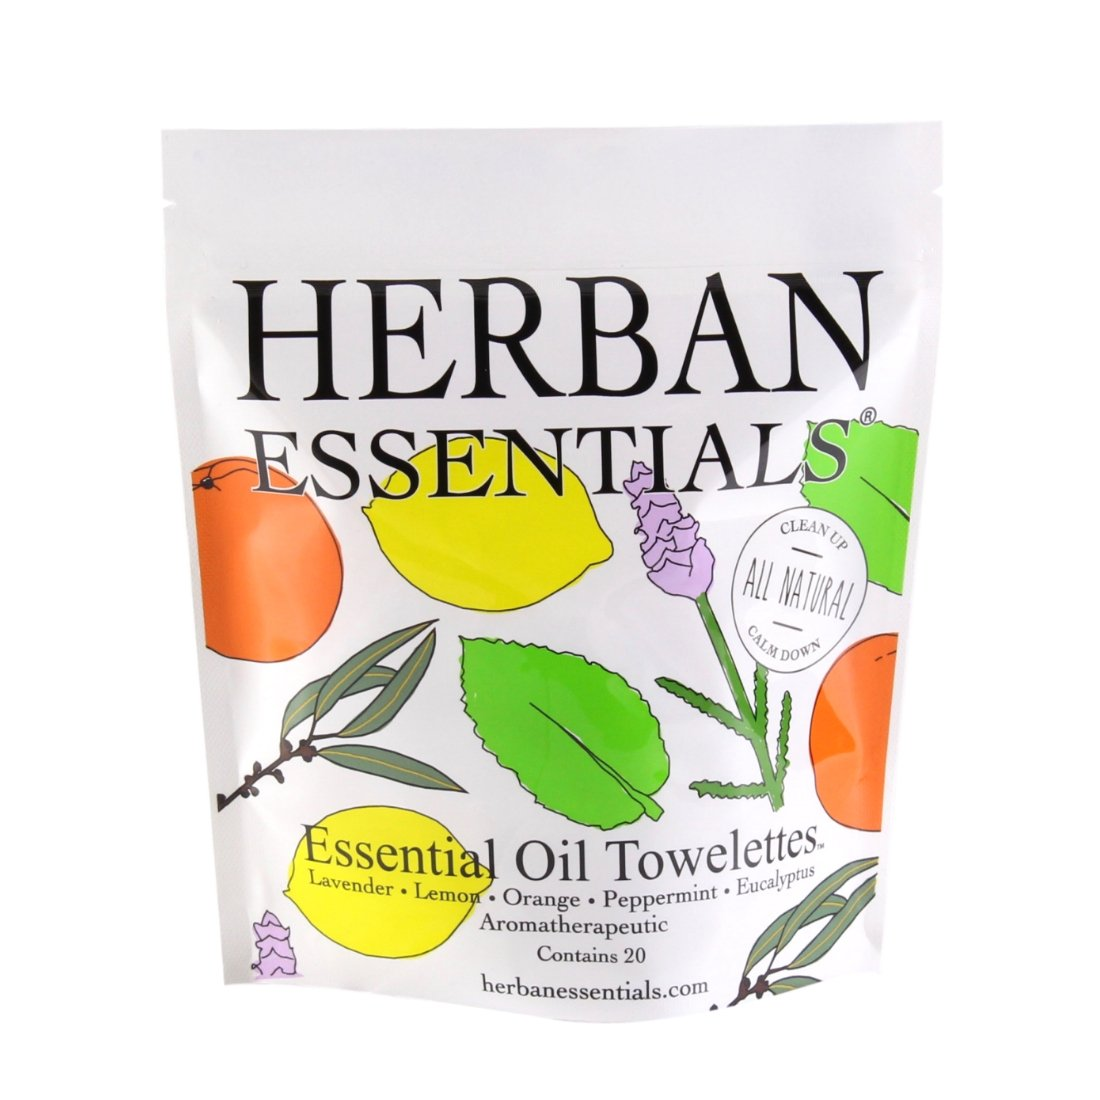 herban essentials - mixed towelettes[product_type ]herban essentials - Kiss and Makeup